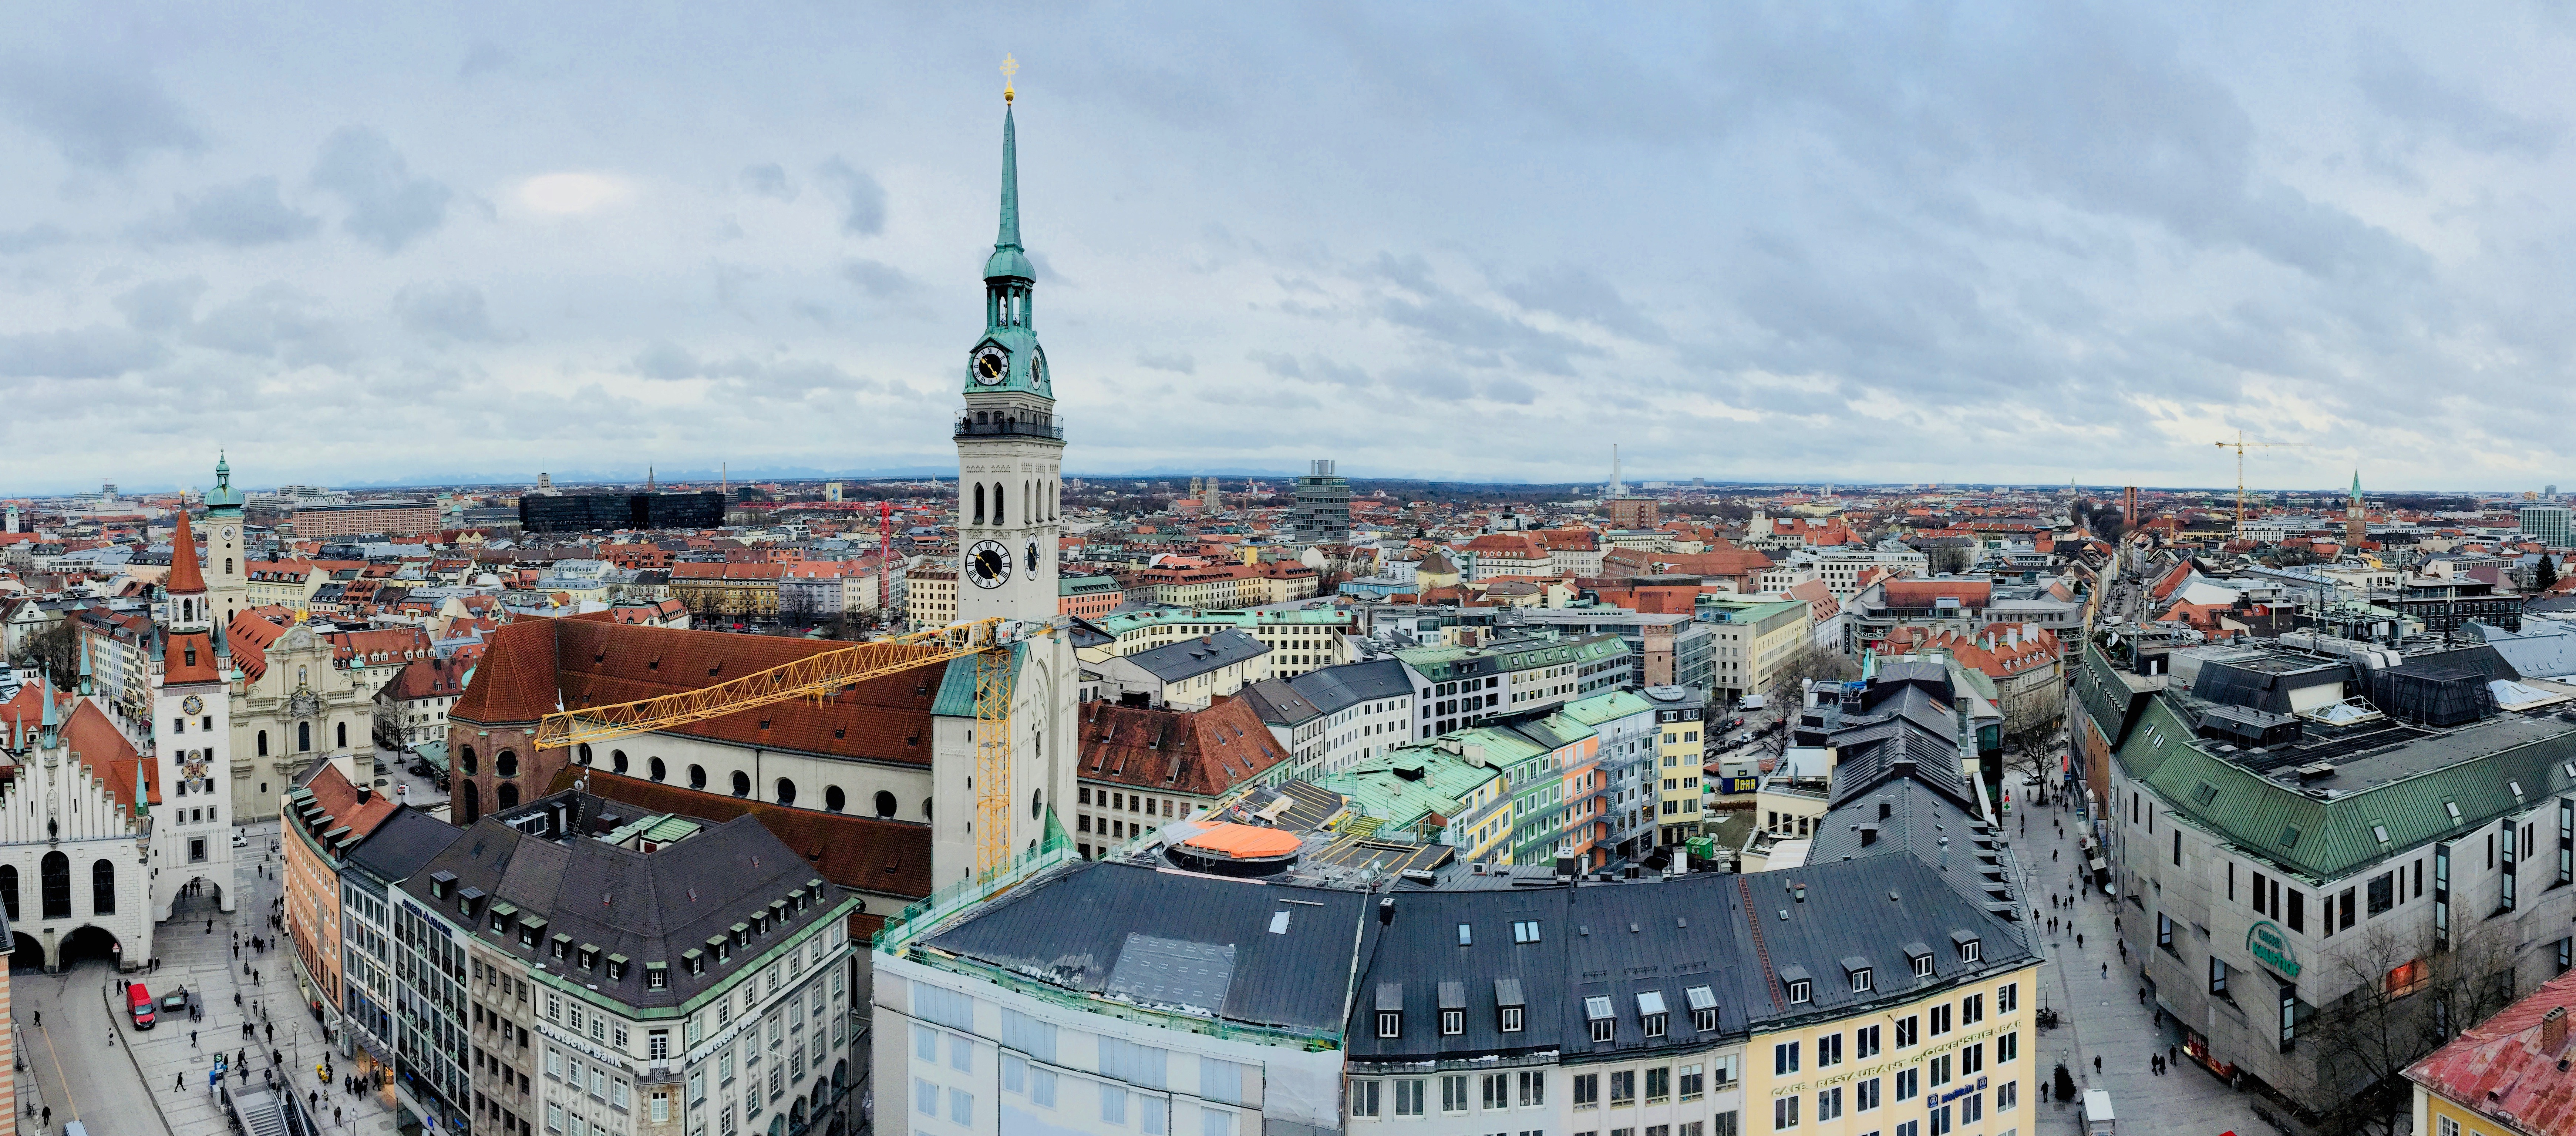 Peterkirche from the New City Hall